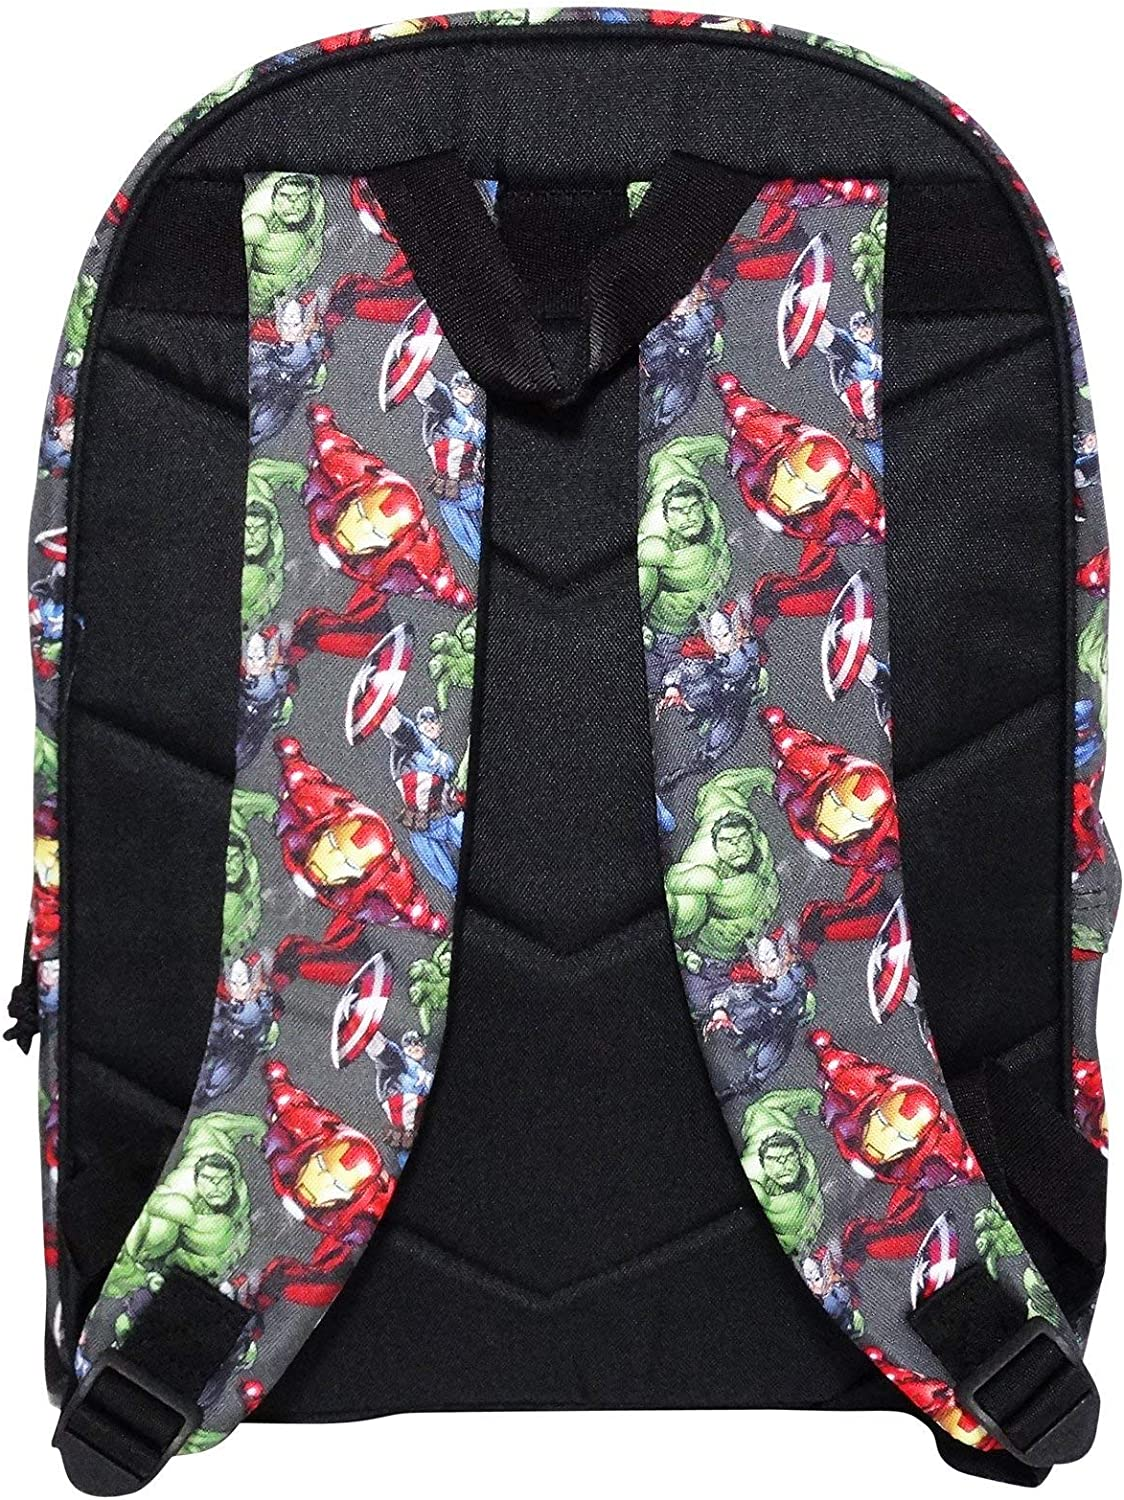 Marvel Iron School Backpack with Handle A Free Frisbee Included